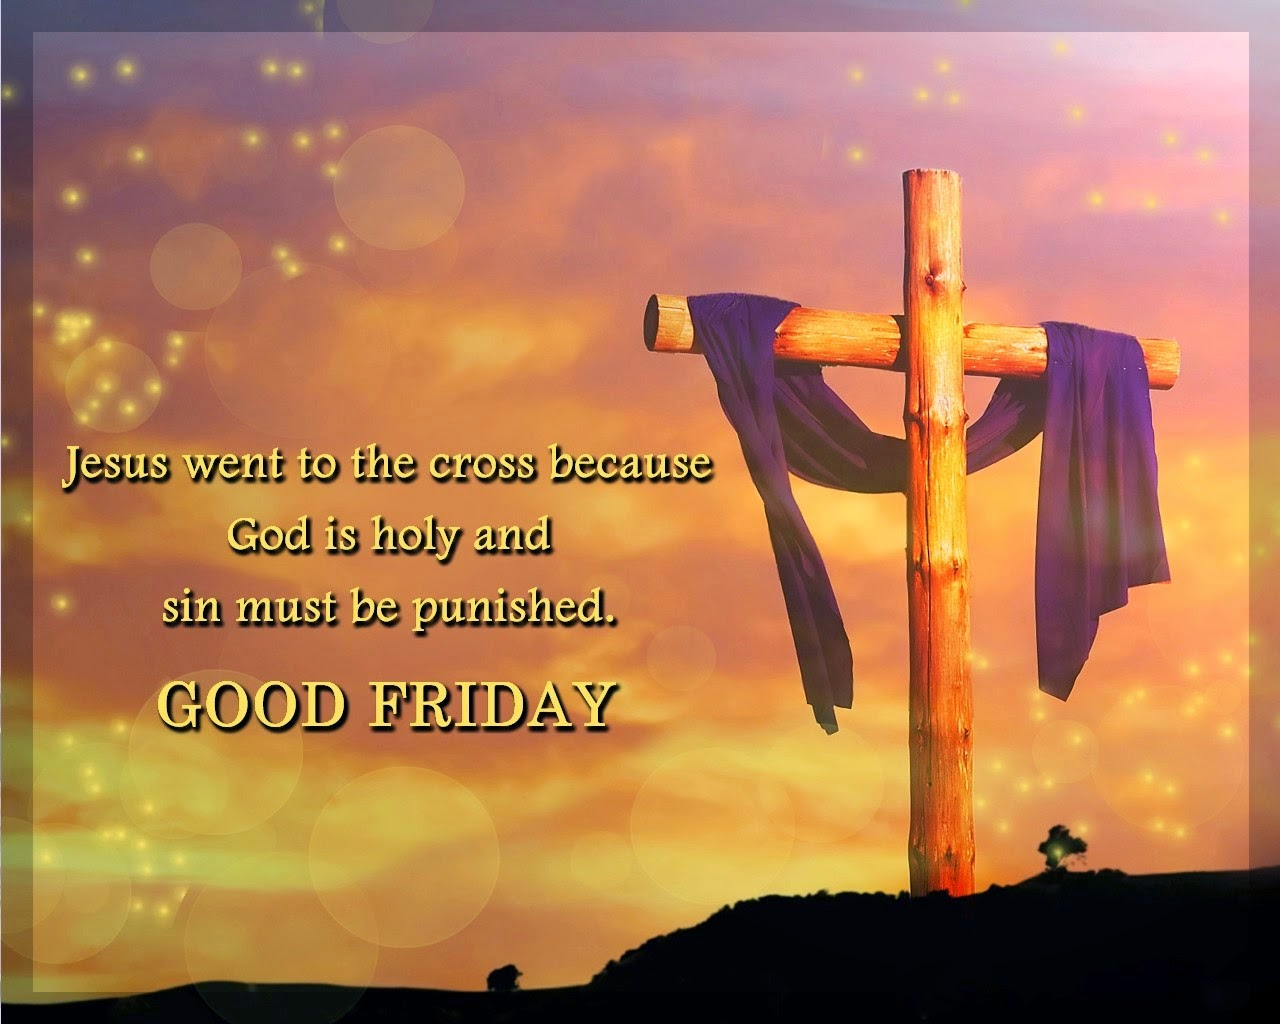 Good Friday Meaning Quotes. QuotesGram